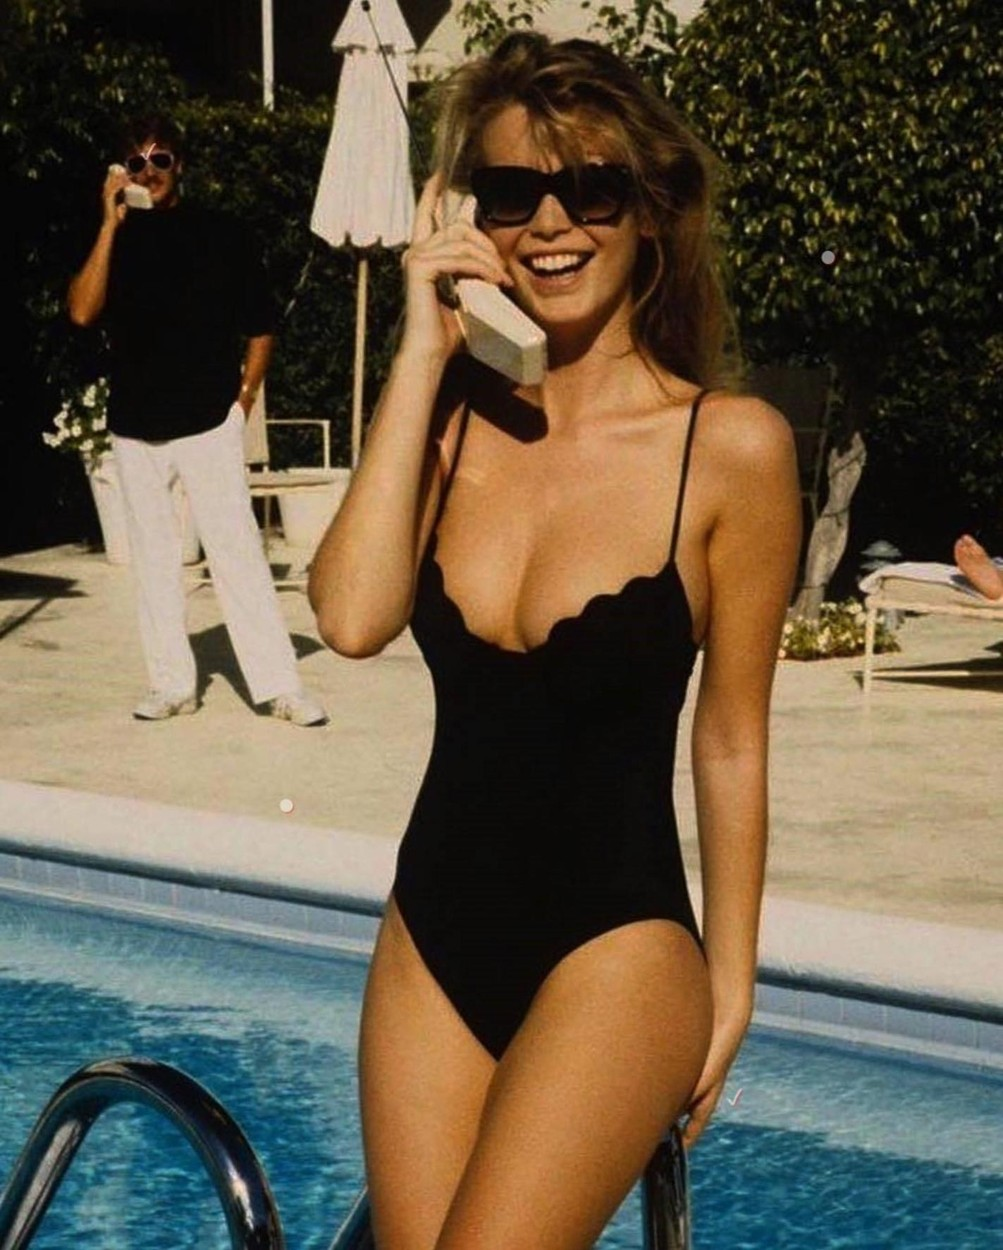 Claudia Schiffer (claudiaschiffer / 02.08.2018): on holiday, cant come to the phone X . #tbt #90s #summertime